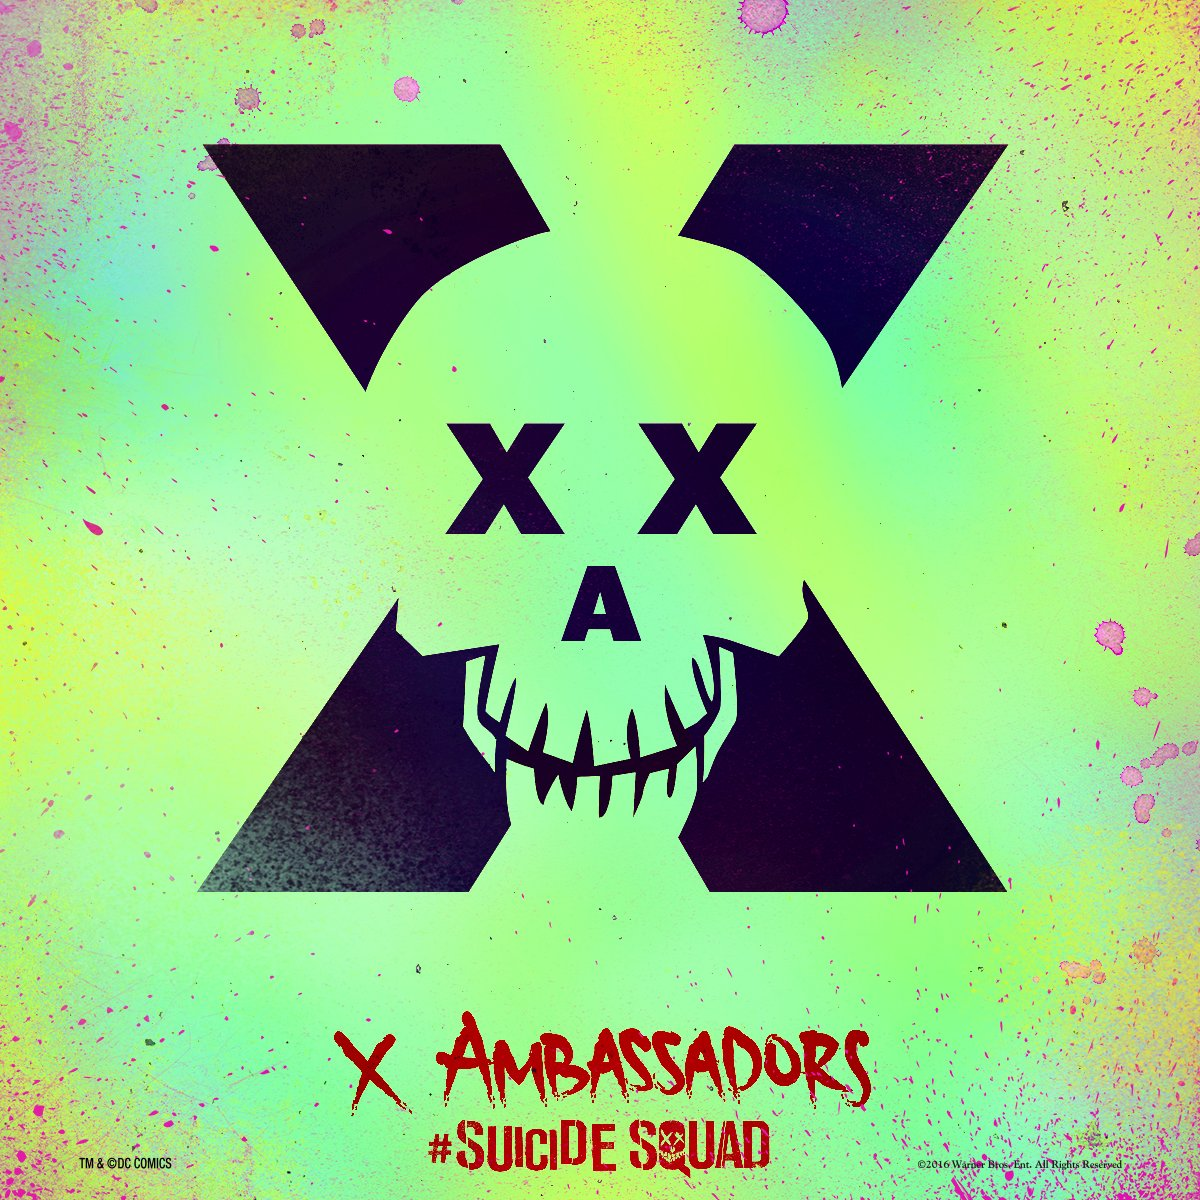 X AMBASSADORS on Twitt...X Album